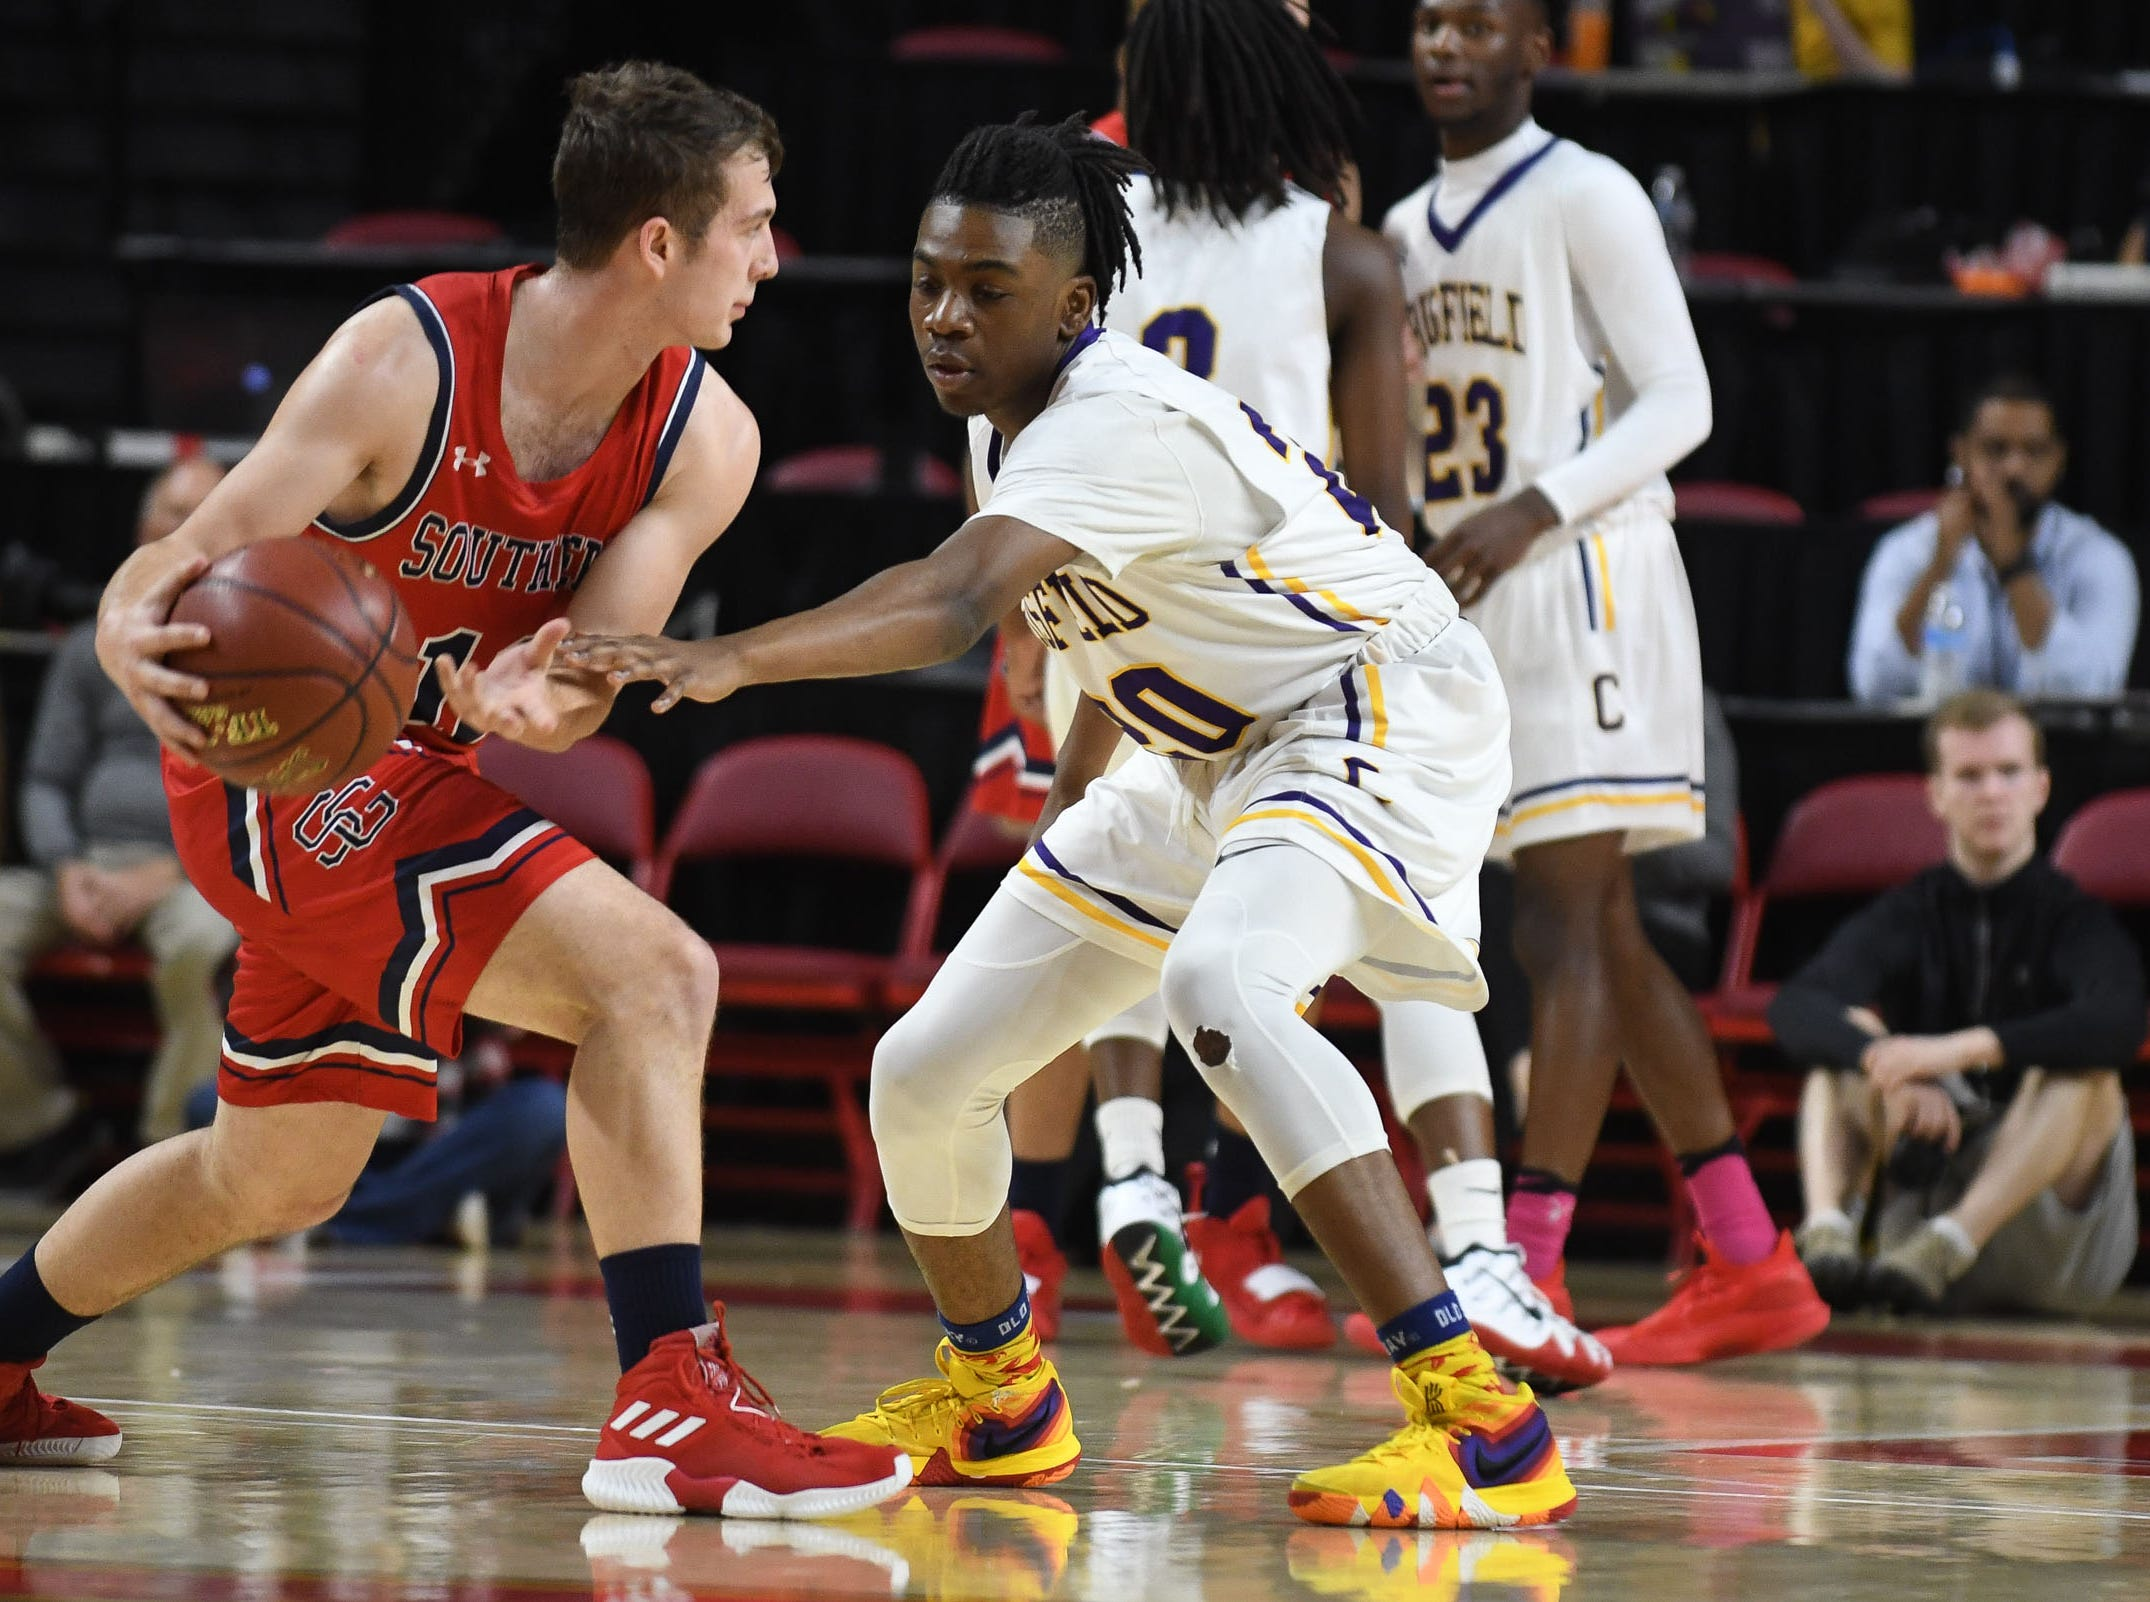 Crisfield's Christian Crawford on defense against Southern-Garrett during the MPSSAA State Championships at the Xfinity Center in College Park, Md. on Friday, March 15, 2019.